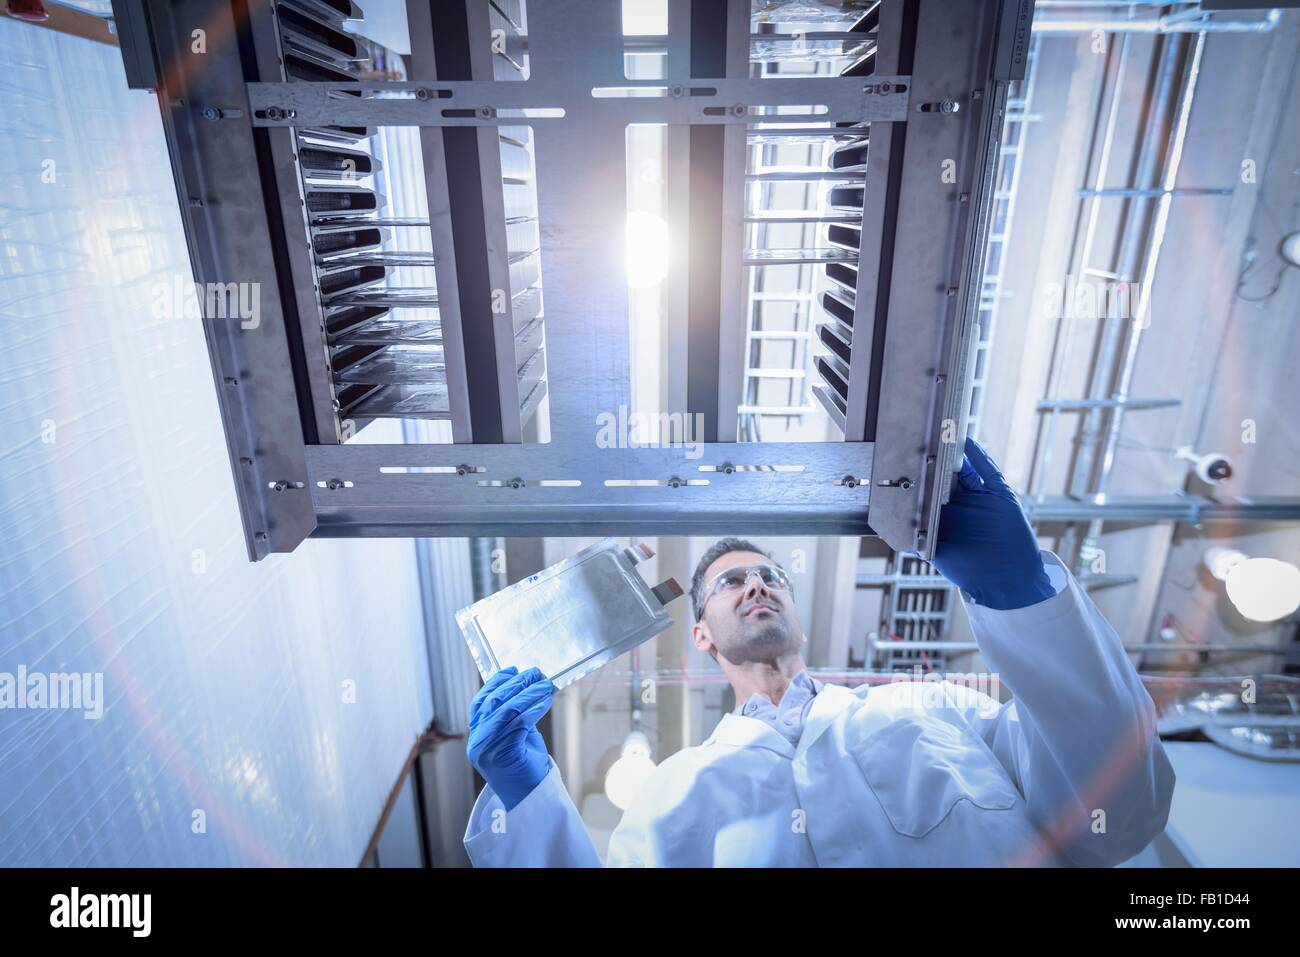 Scientist with lithium ion pouch cell manufacture machine in battery research facility, low angle view - Stock Image